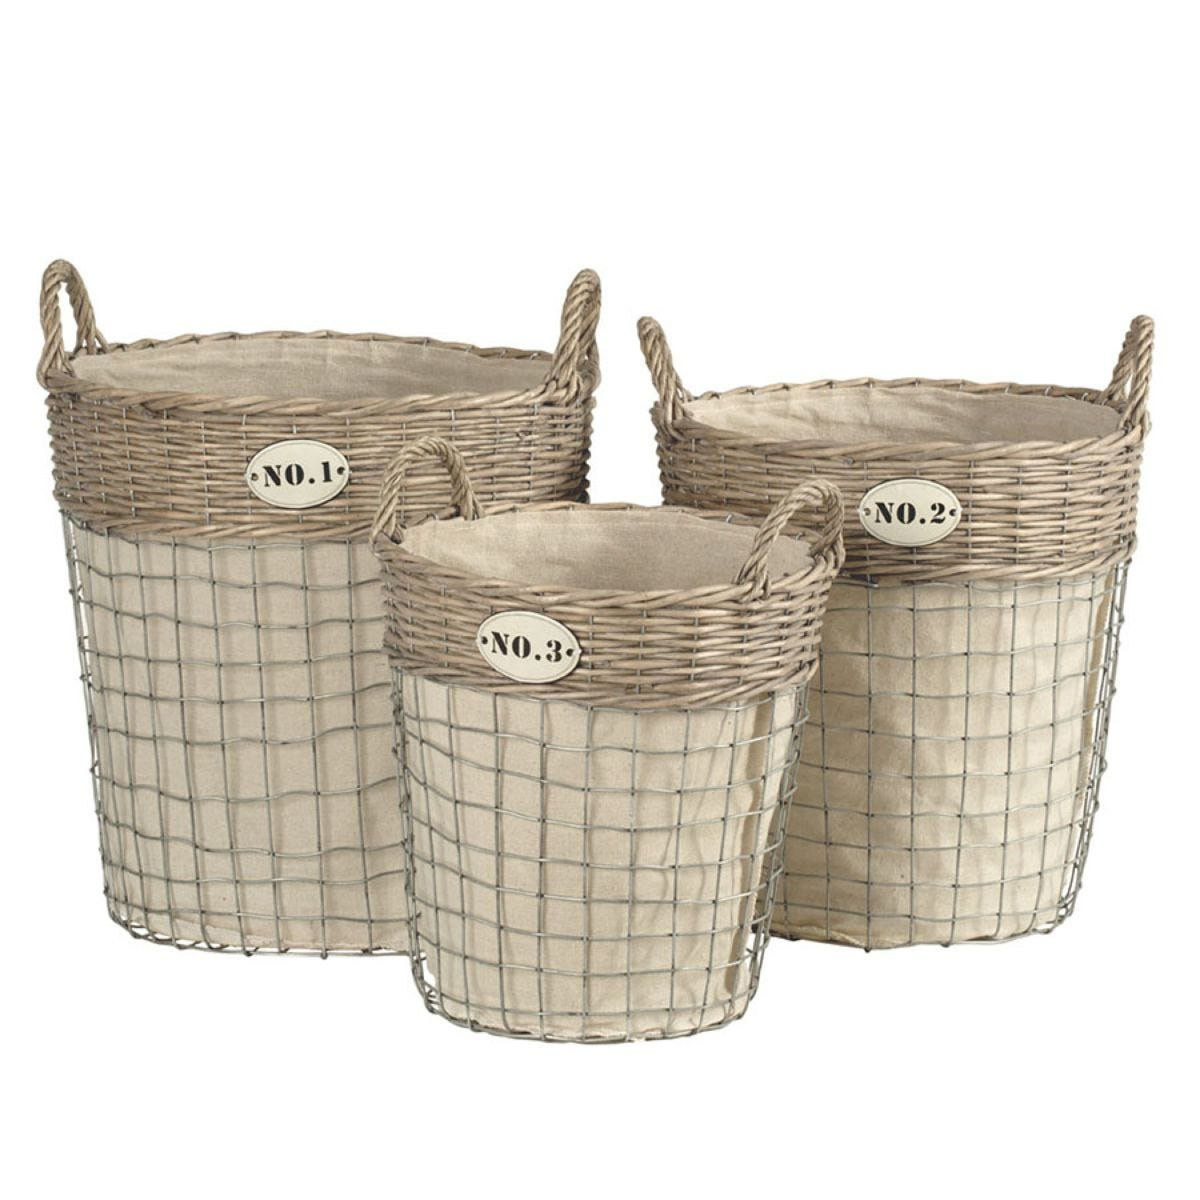 Premier Housewares Lida Set of 3 Laundry Baskets - Willow & Wire